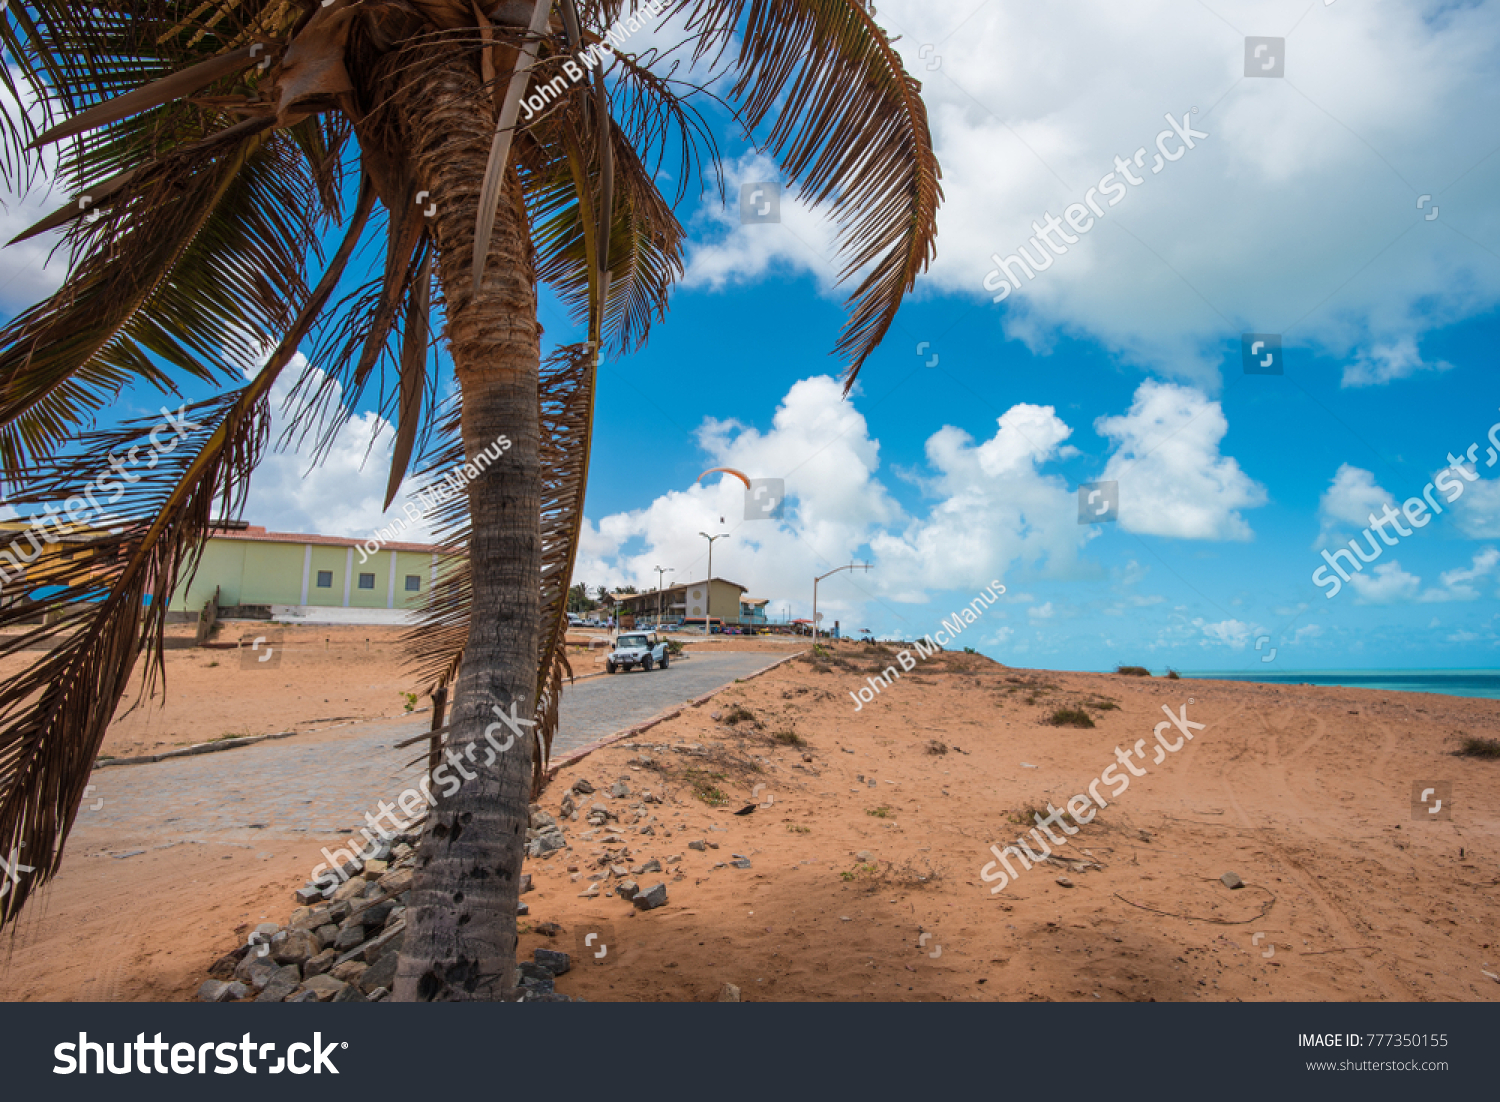 canoa quebrada beach scenes stock photo (edit now) 777350155